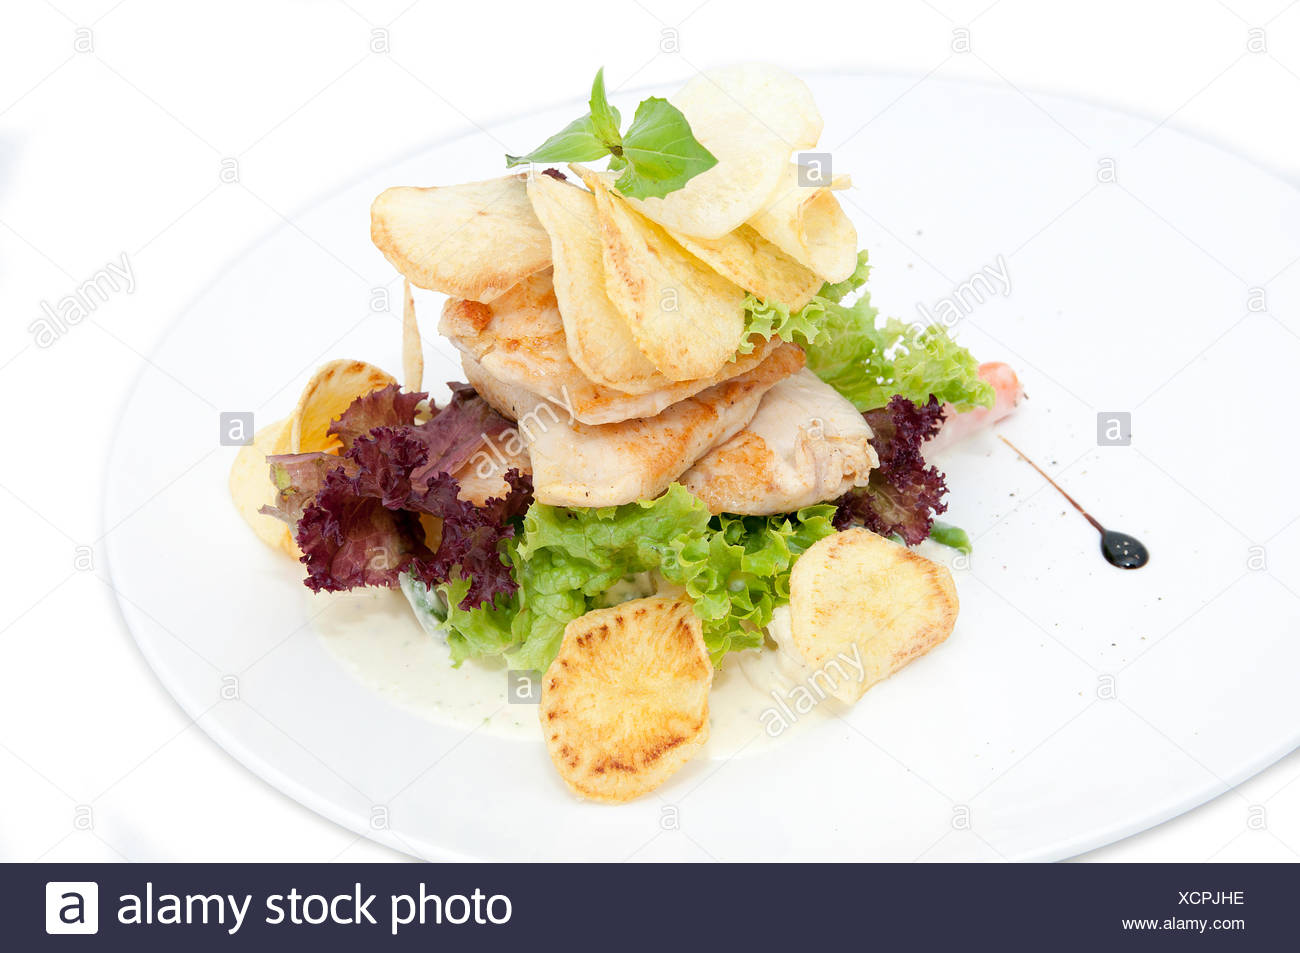 salad with chicken - Stock Image